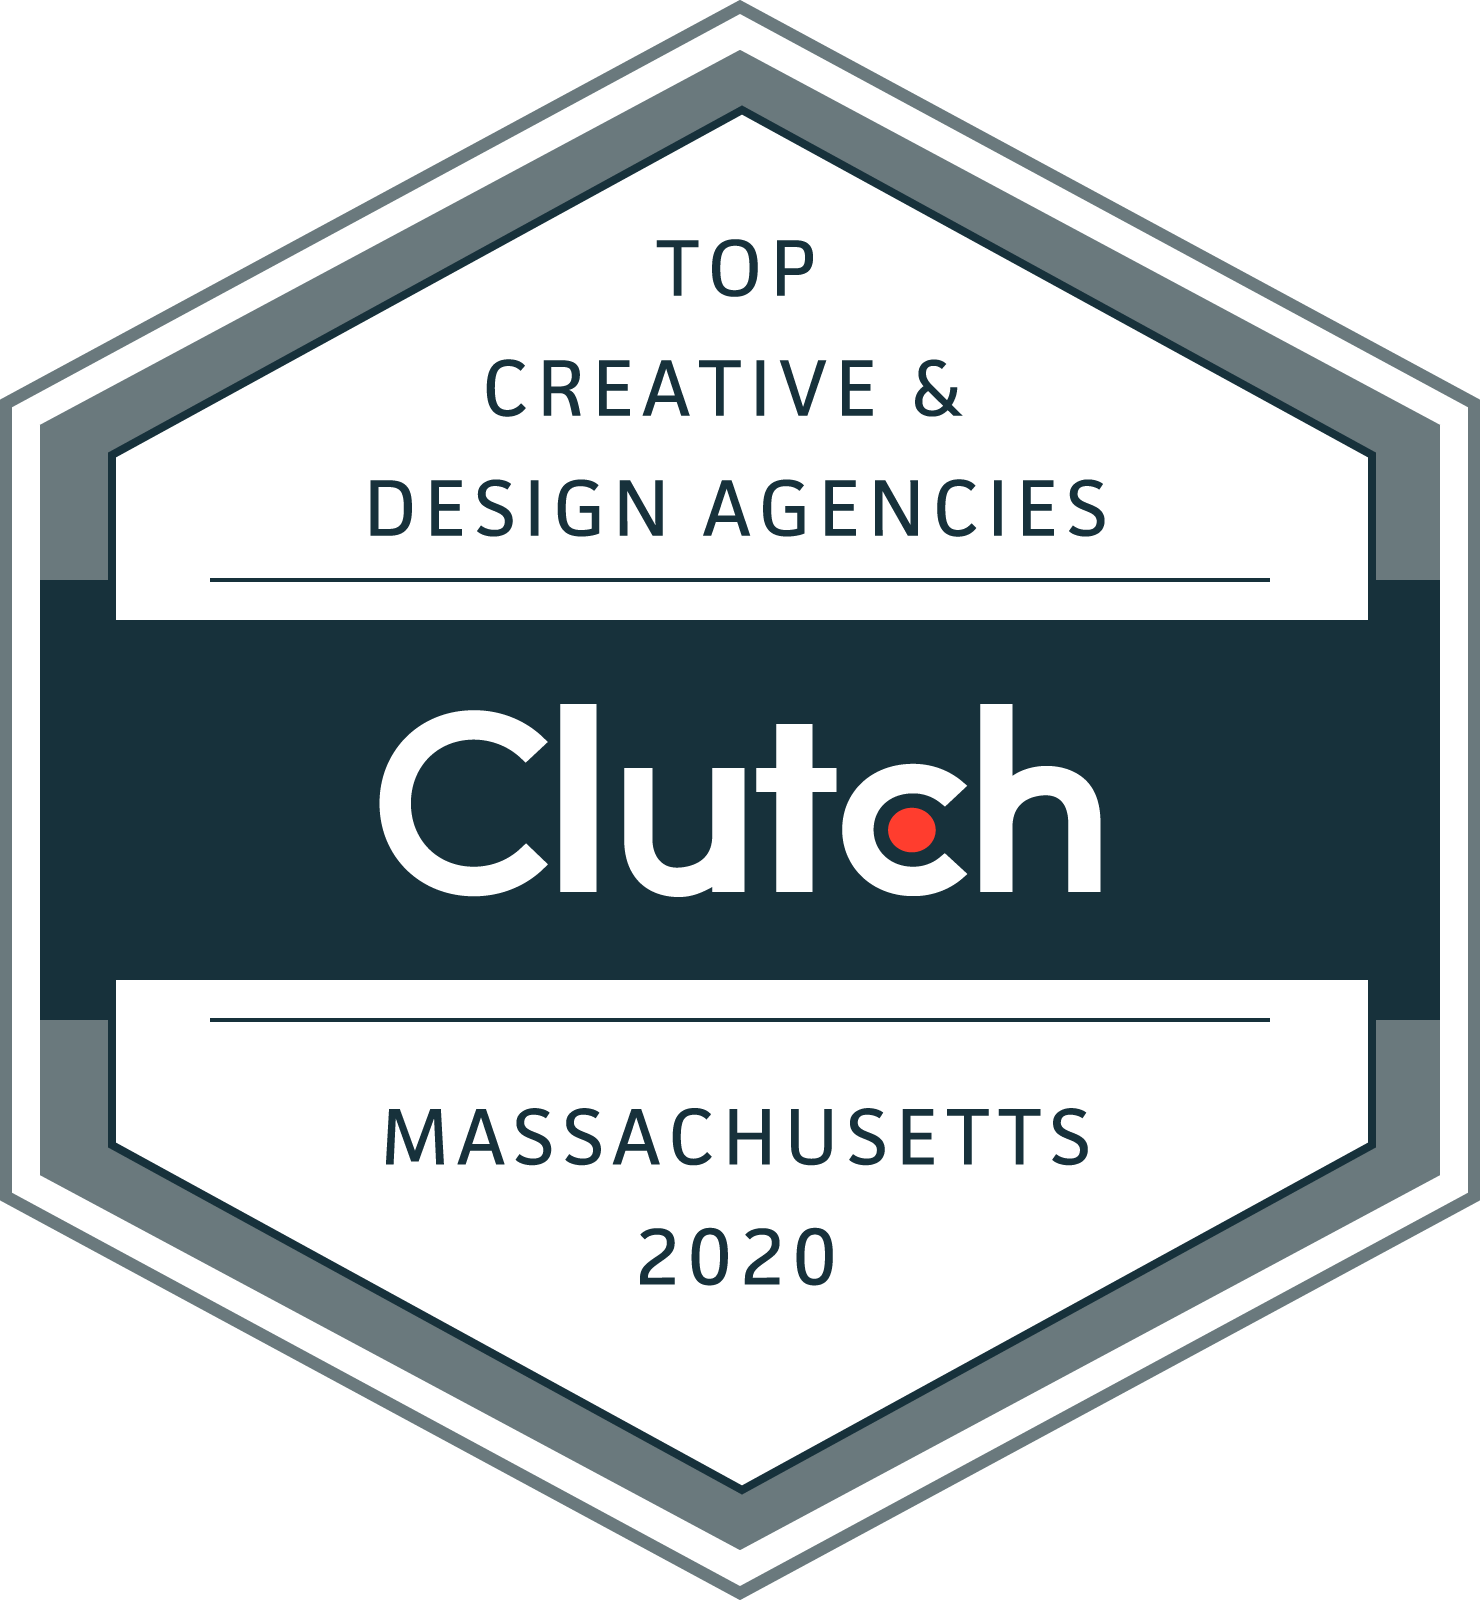 Creative_Design_Agencies_Massachusetts_2020_Award_Image